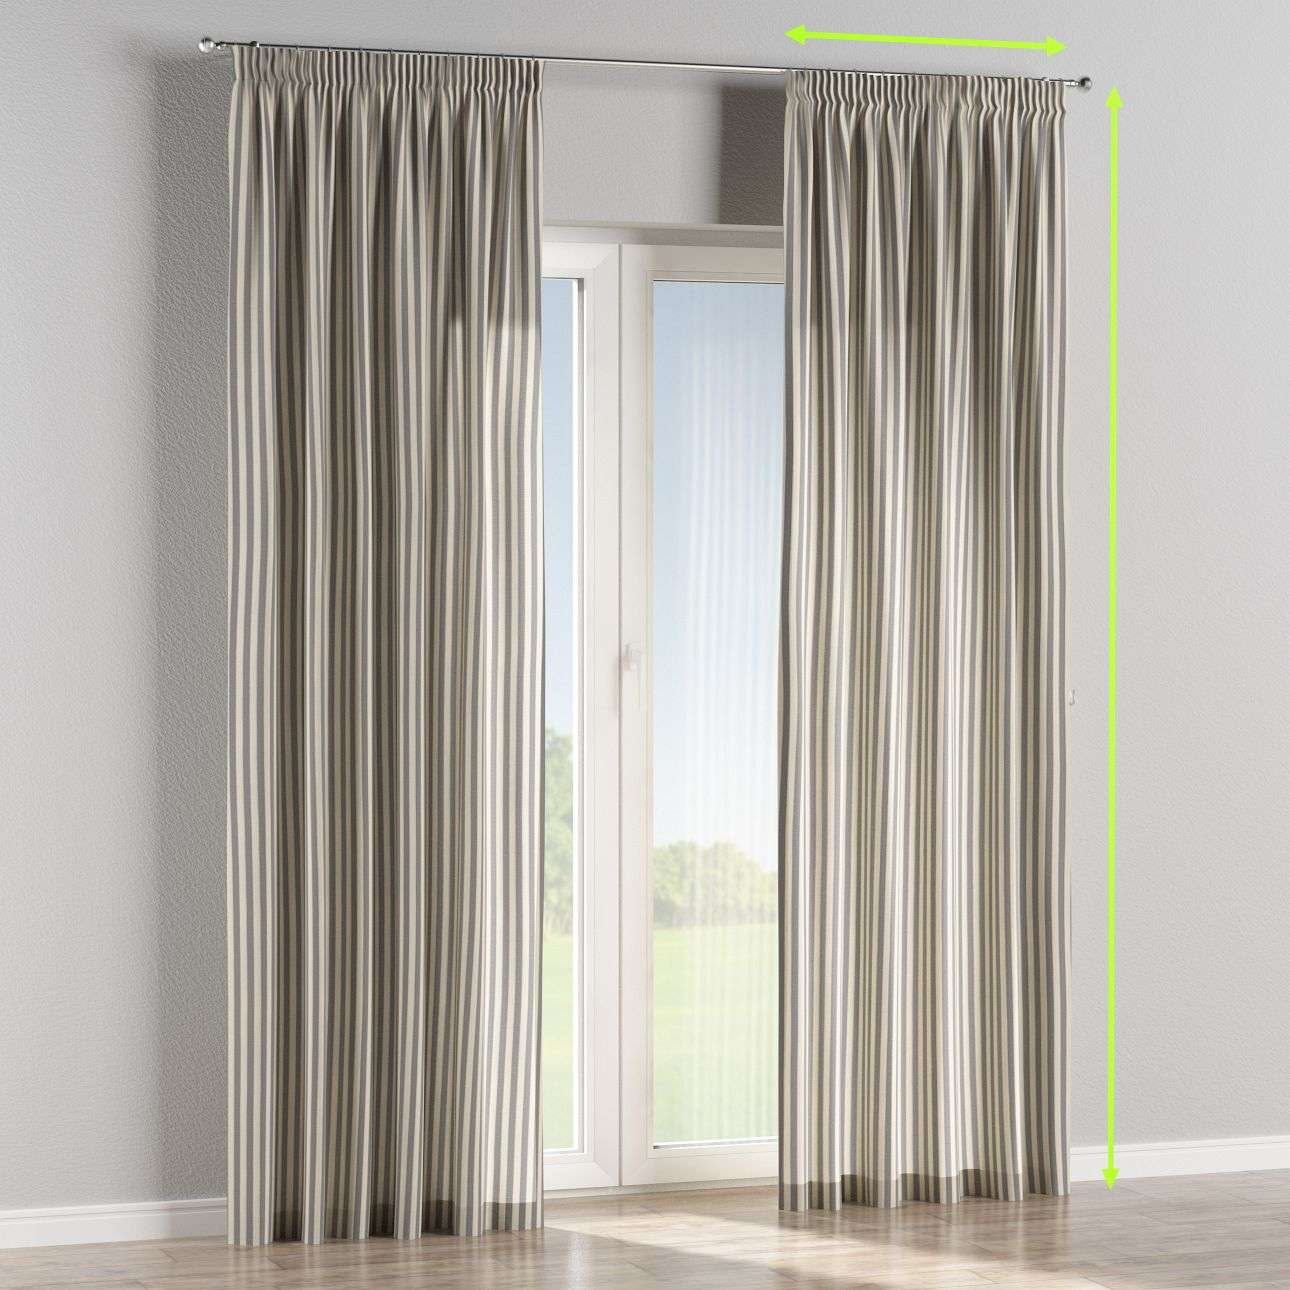 Pencil pleat lined curtains in collection Quadro, fabric: 136-02